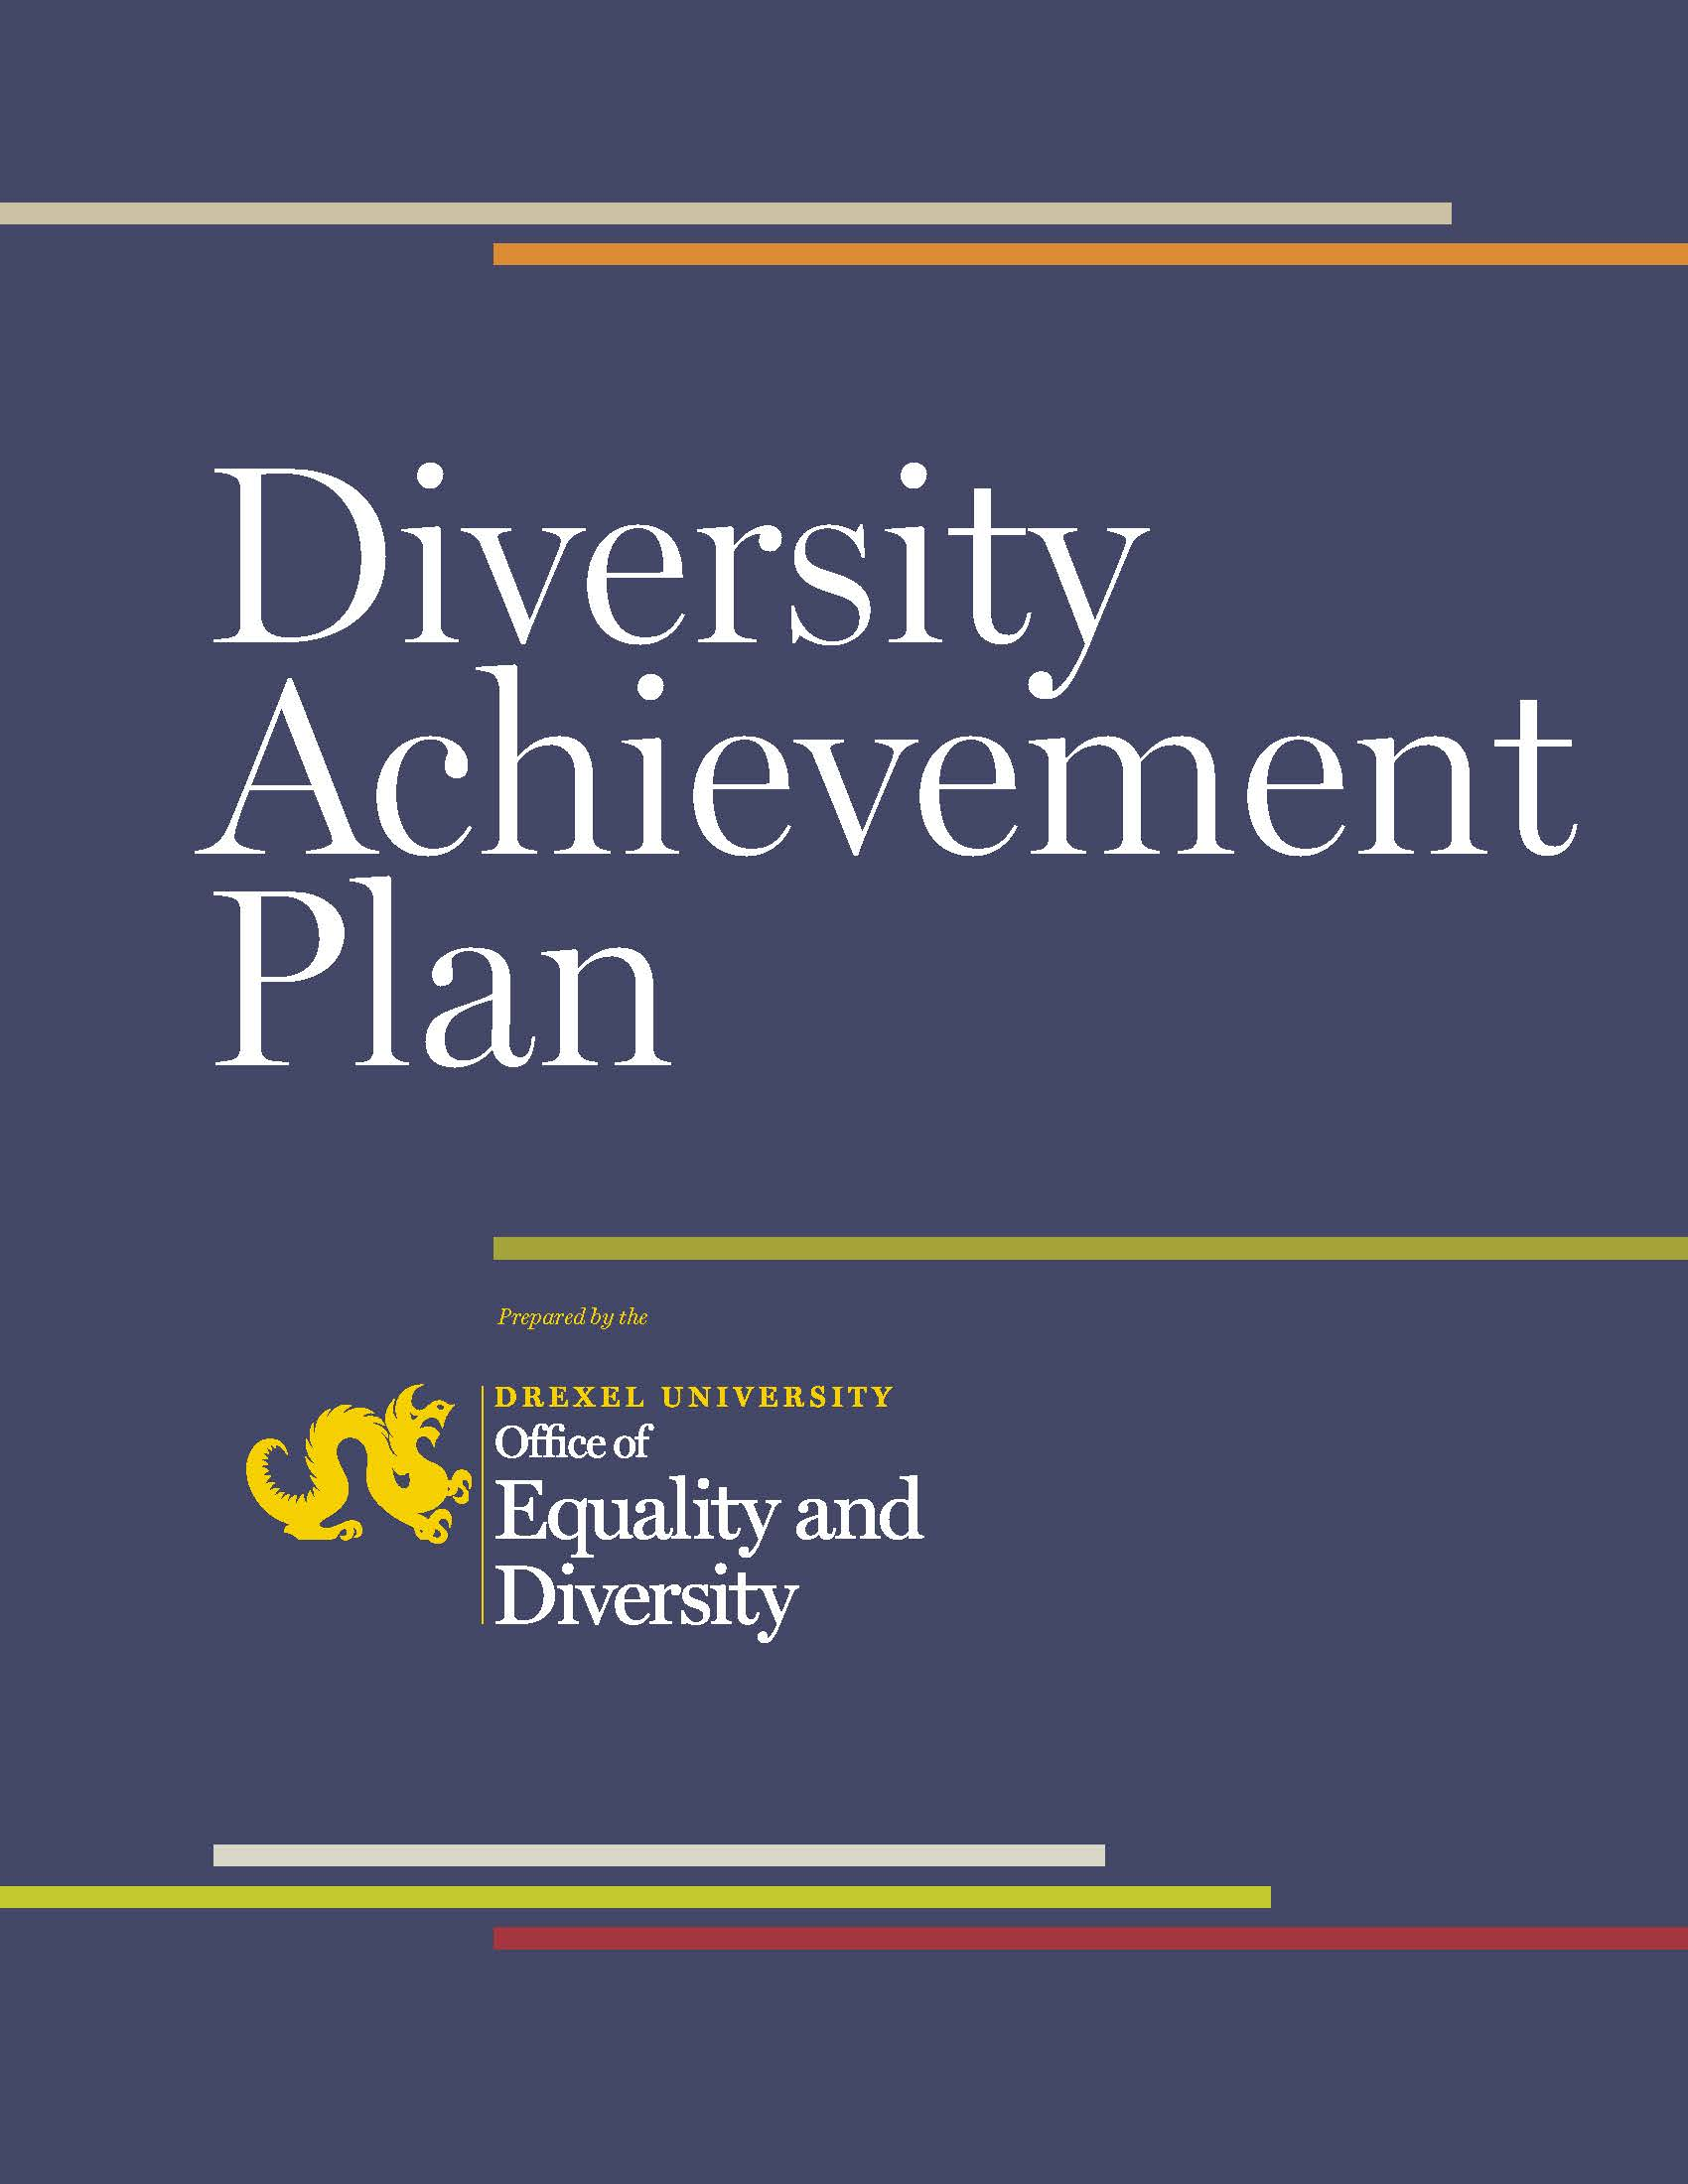 Image of Diversity Achievement Plan Cover